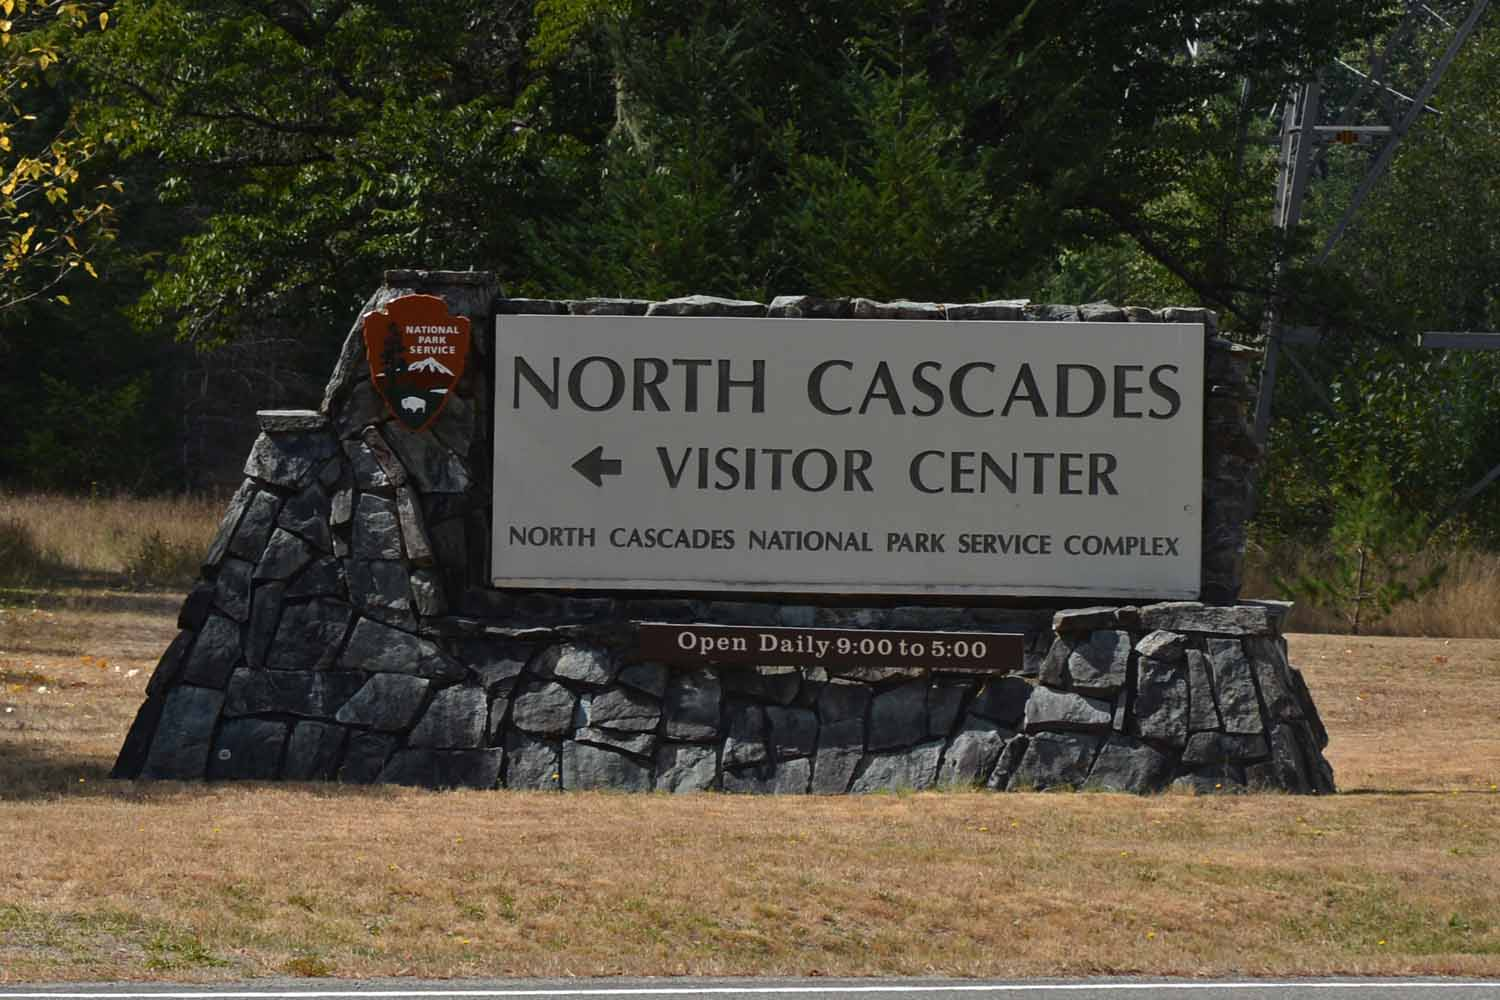 Next stop...North Cascades in Washington